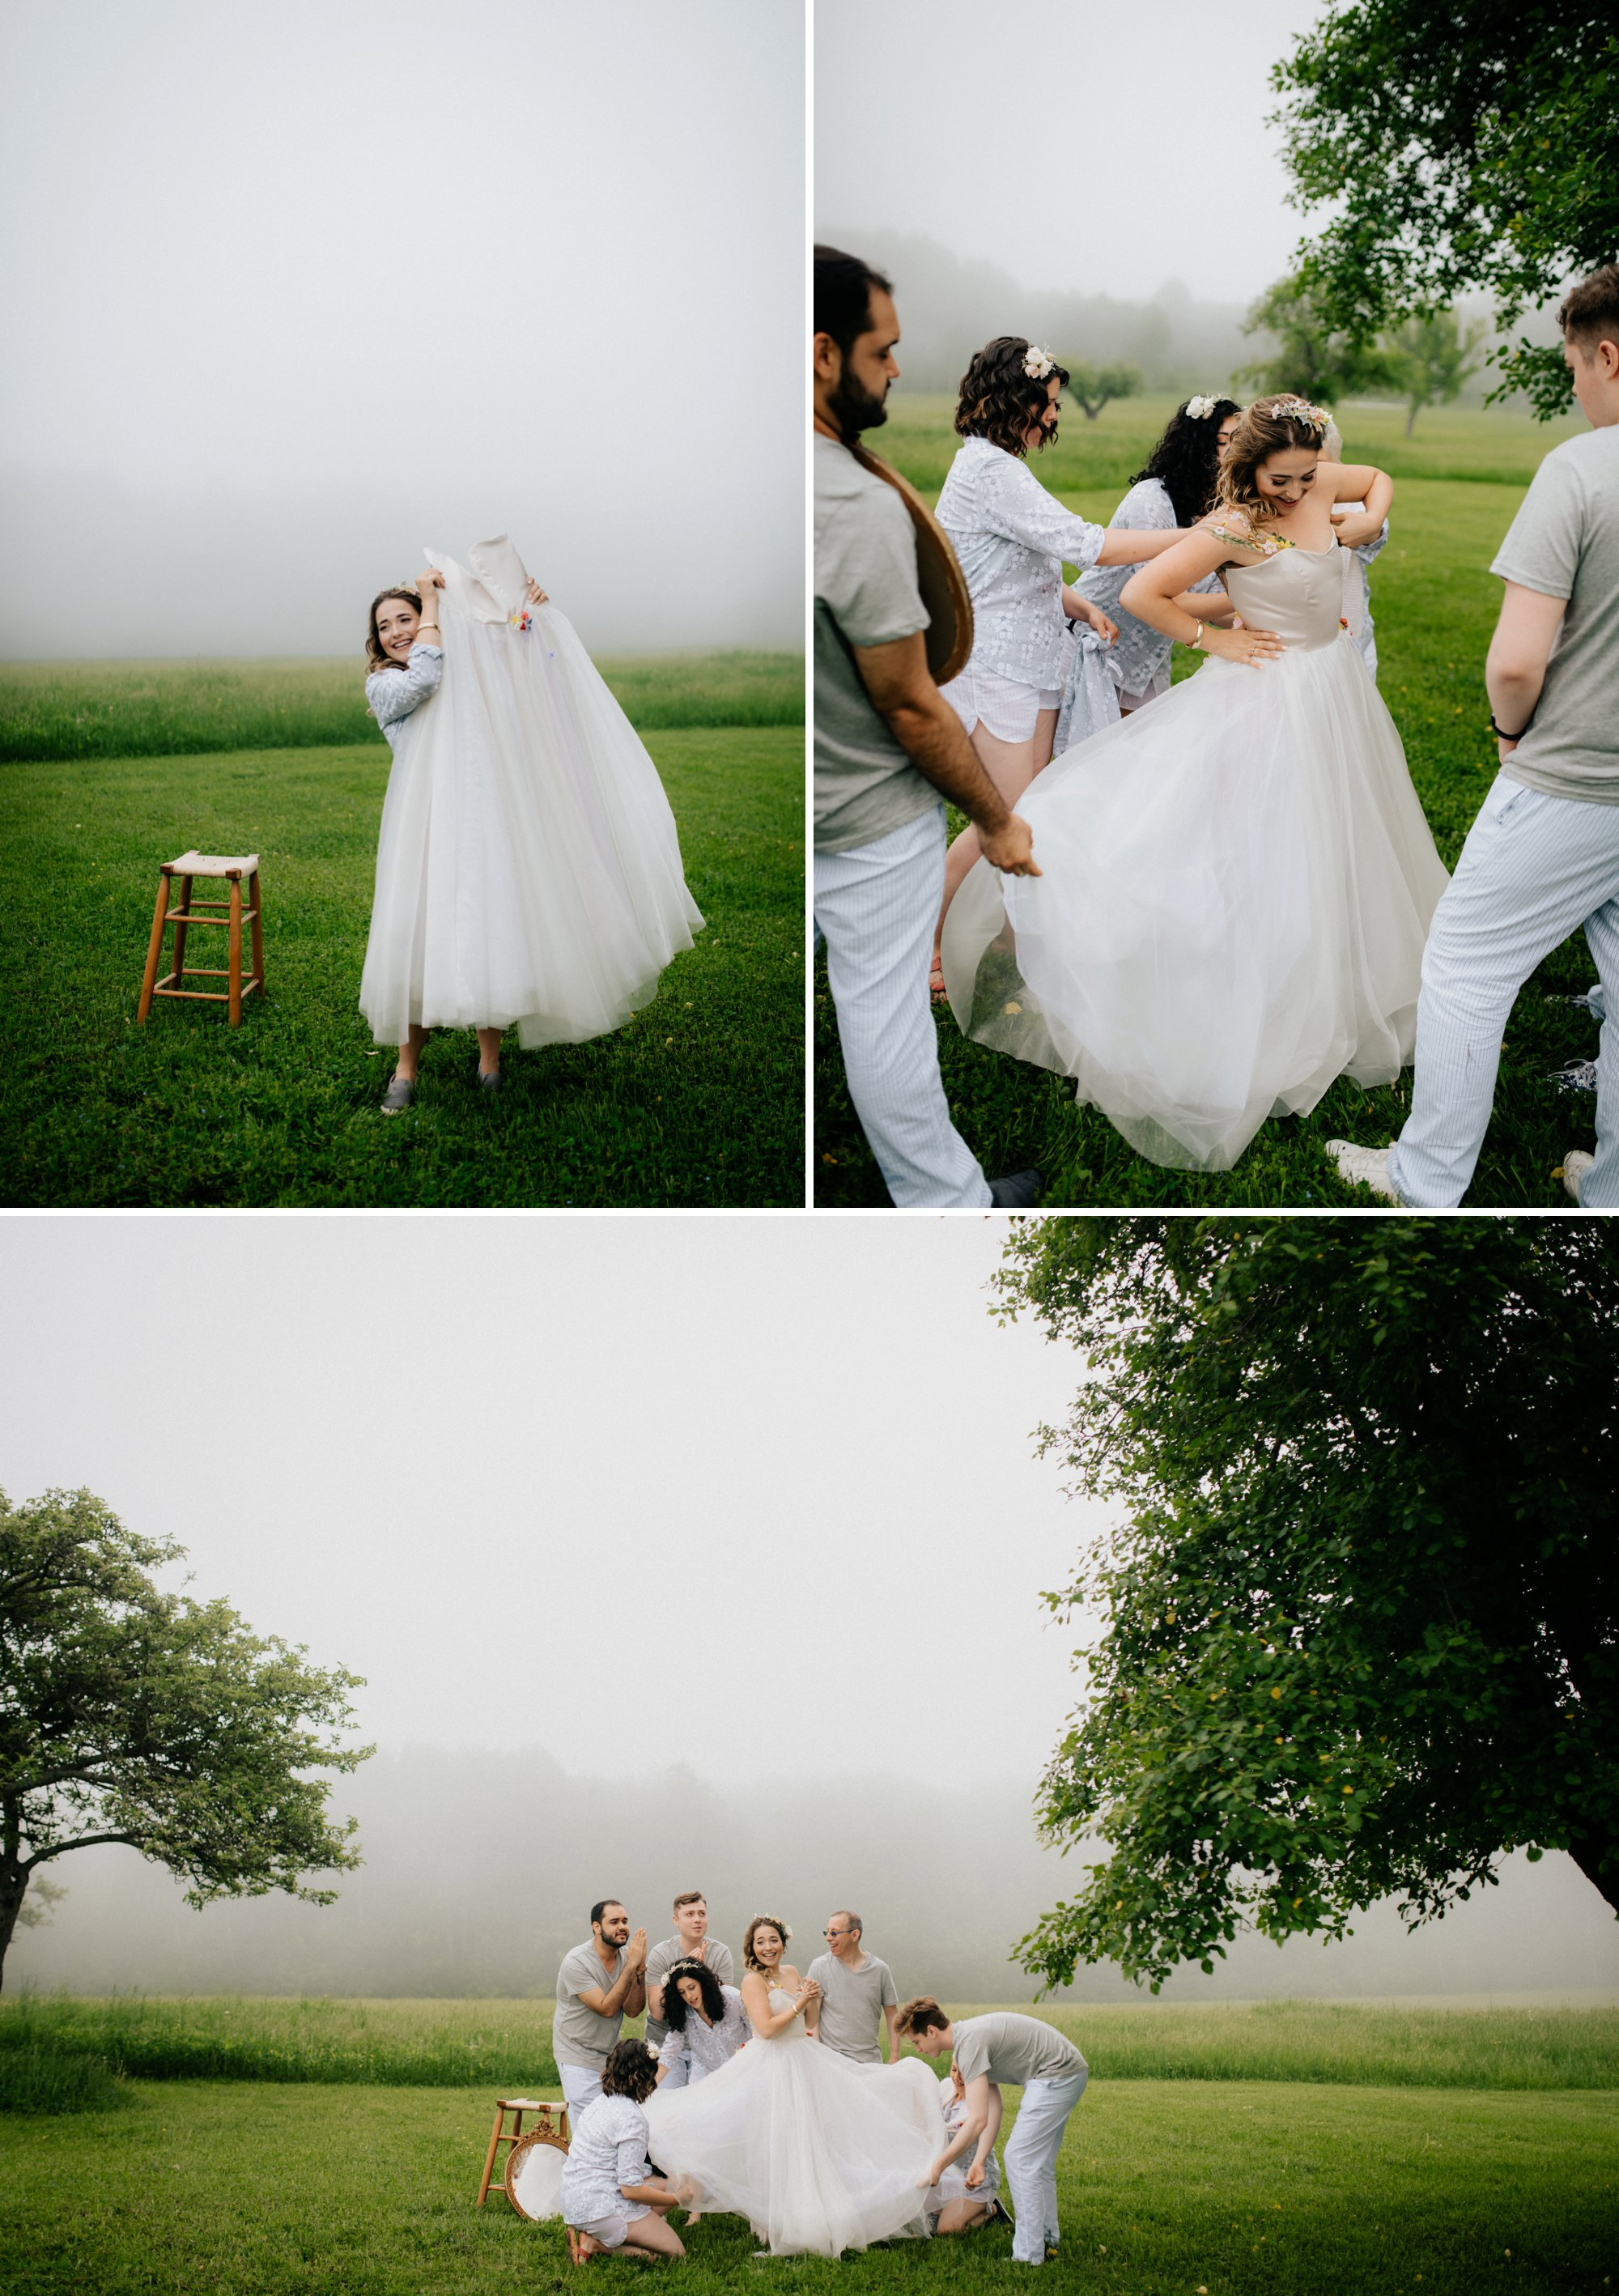 Fiddle Lake Farm Philadelphia Pennsylvania Misty Rustic Wedding with Lush Florals Foggy Outdoor Bridal prep